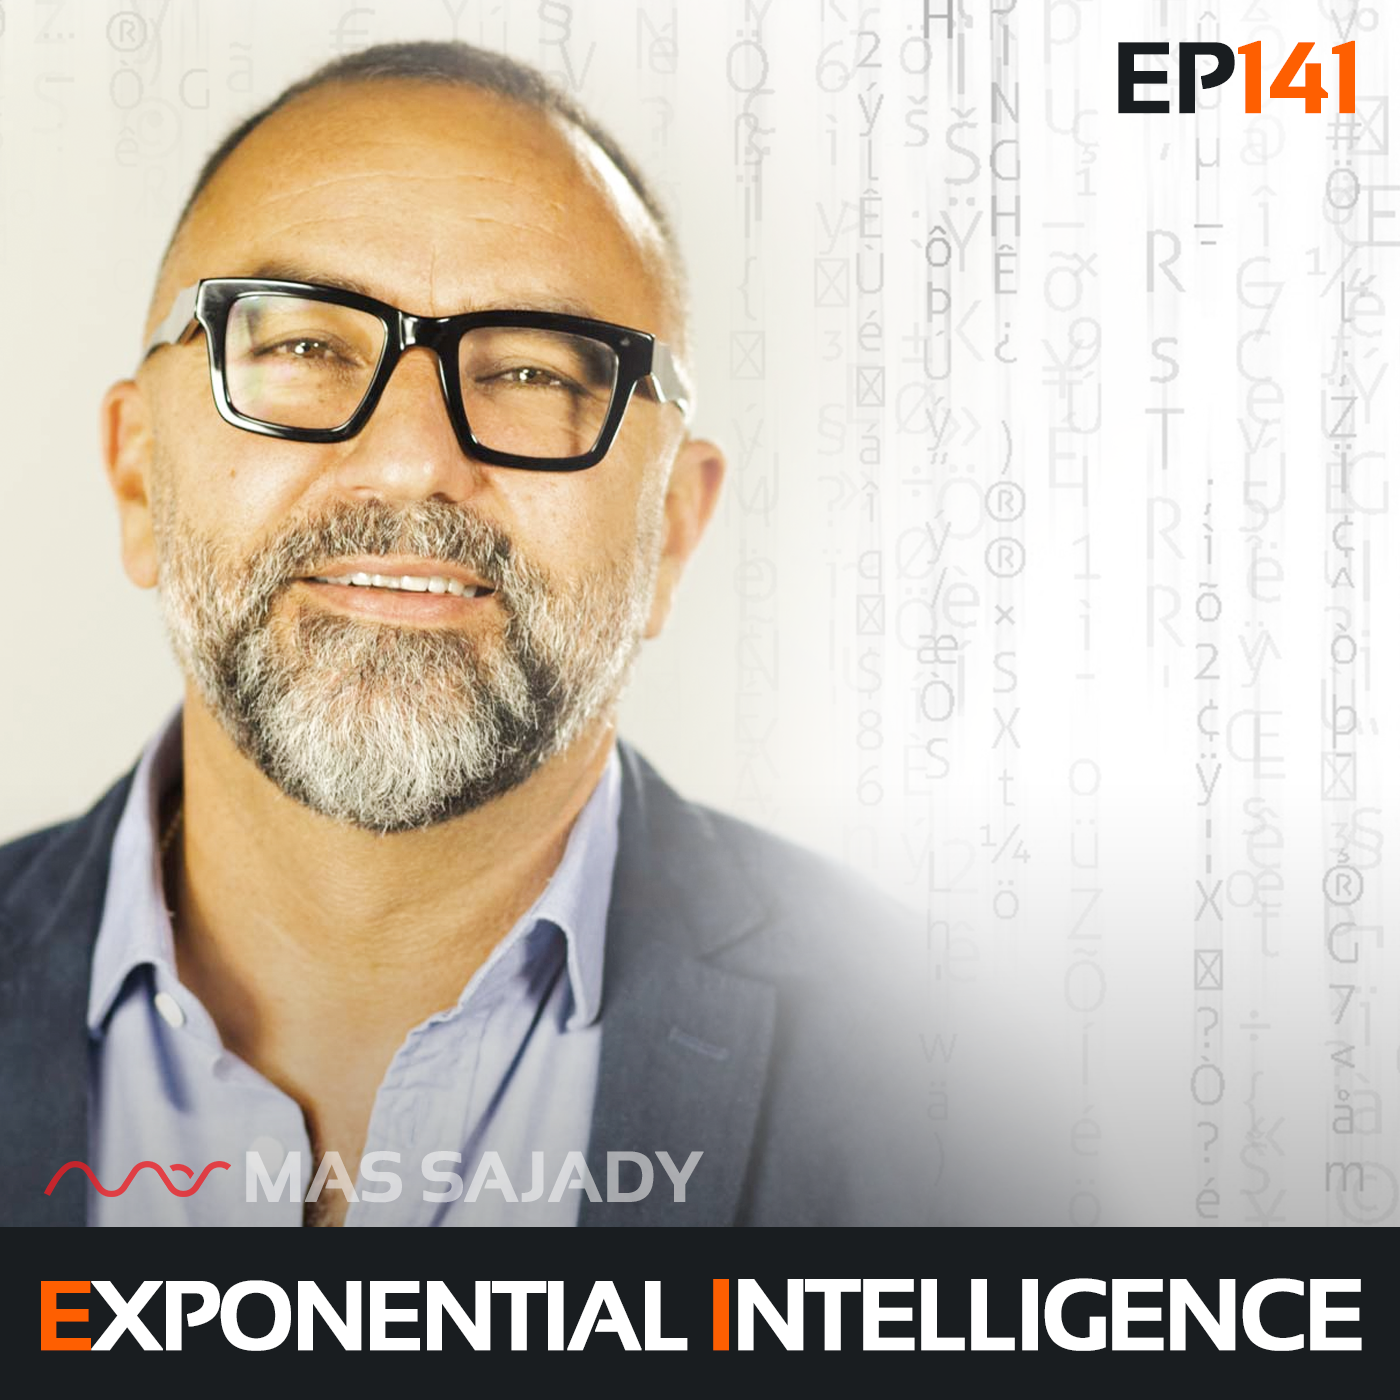 mas-sajady-exponential-intelligence-podcast-141-best-you-with-bernardo-moya.png